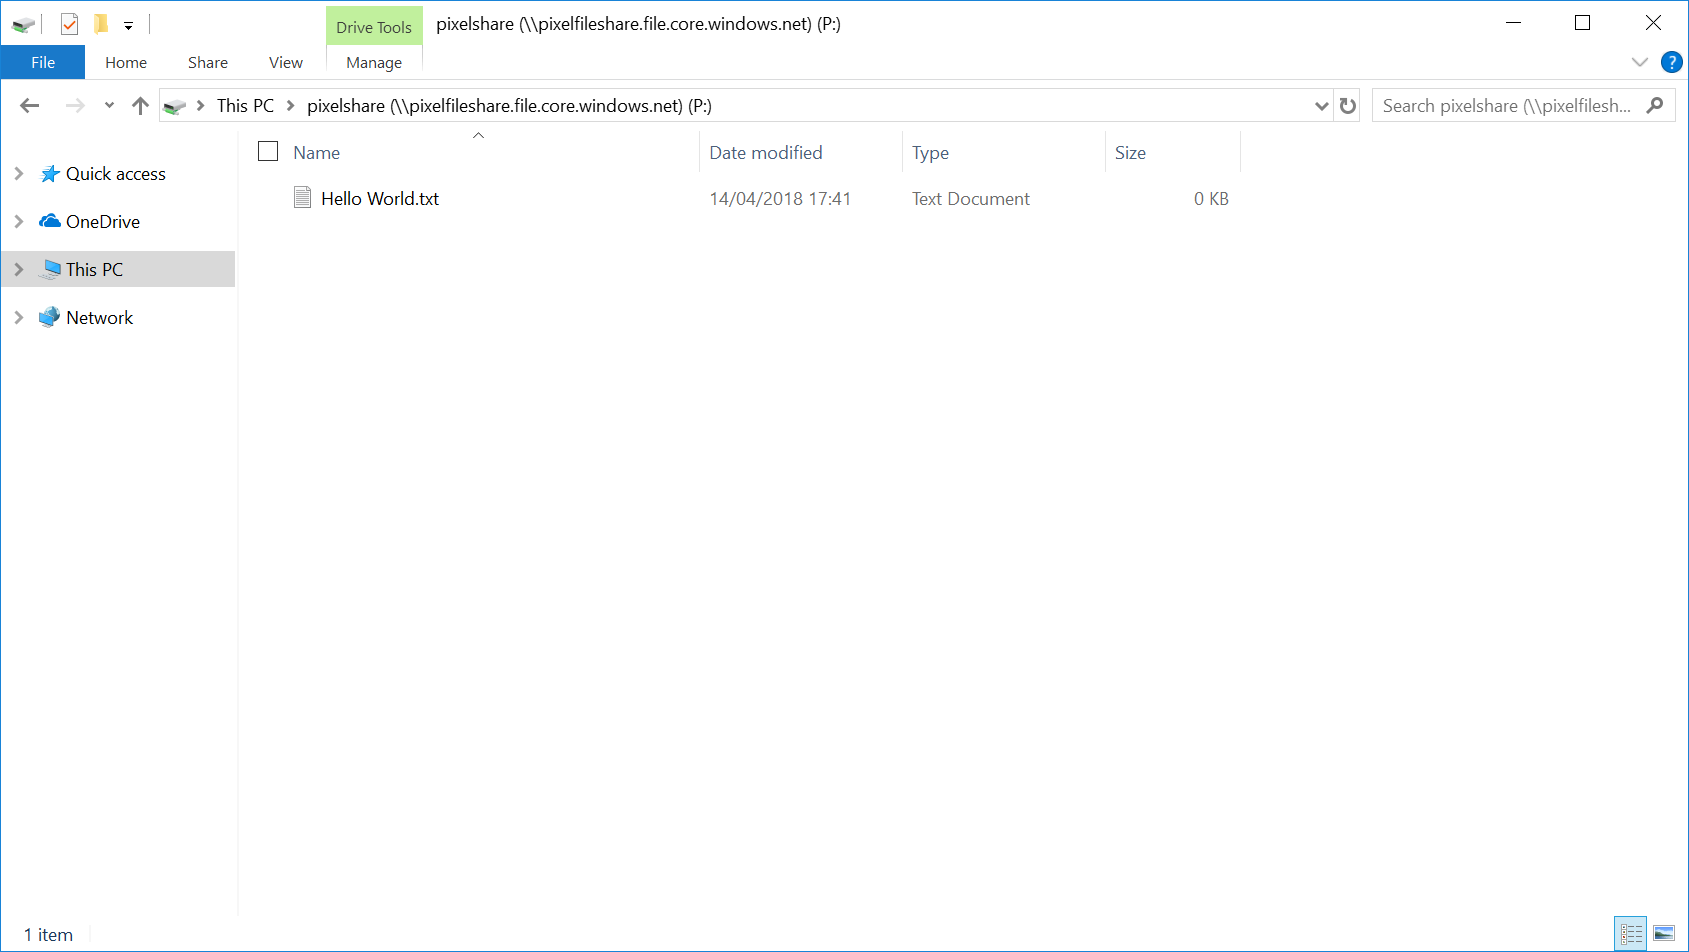 Updated: Step by Step guide to setting up Azure file share